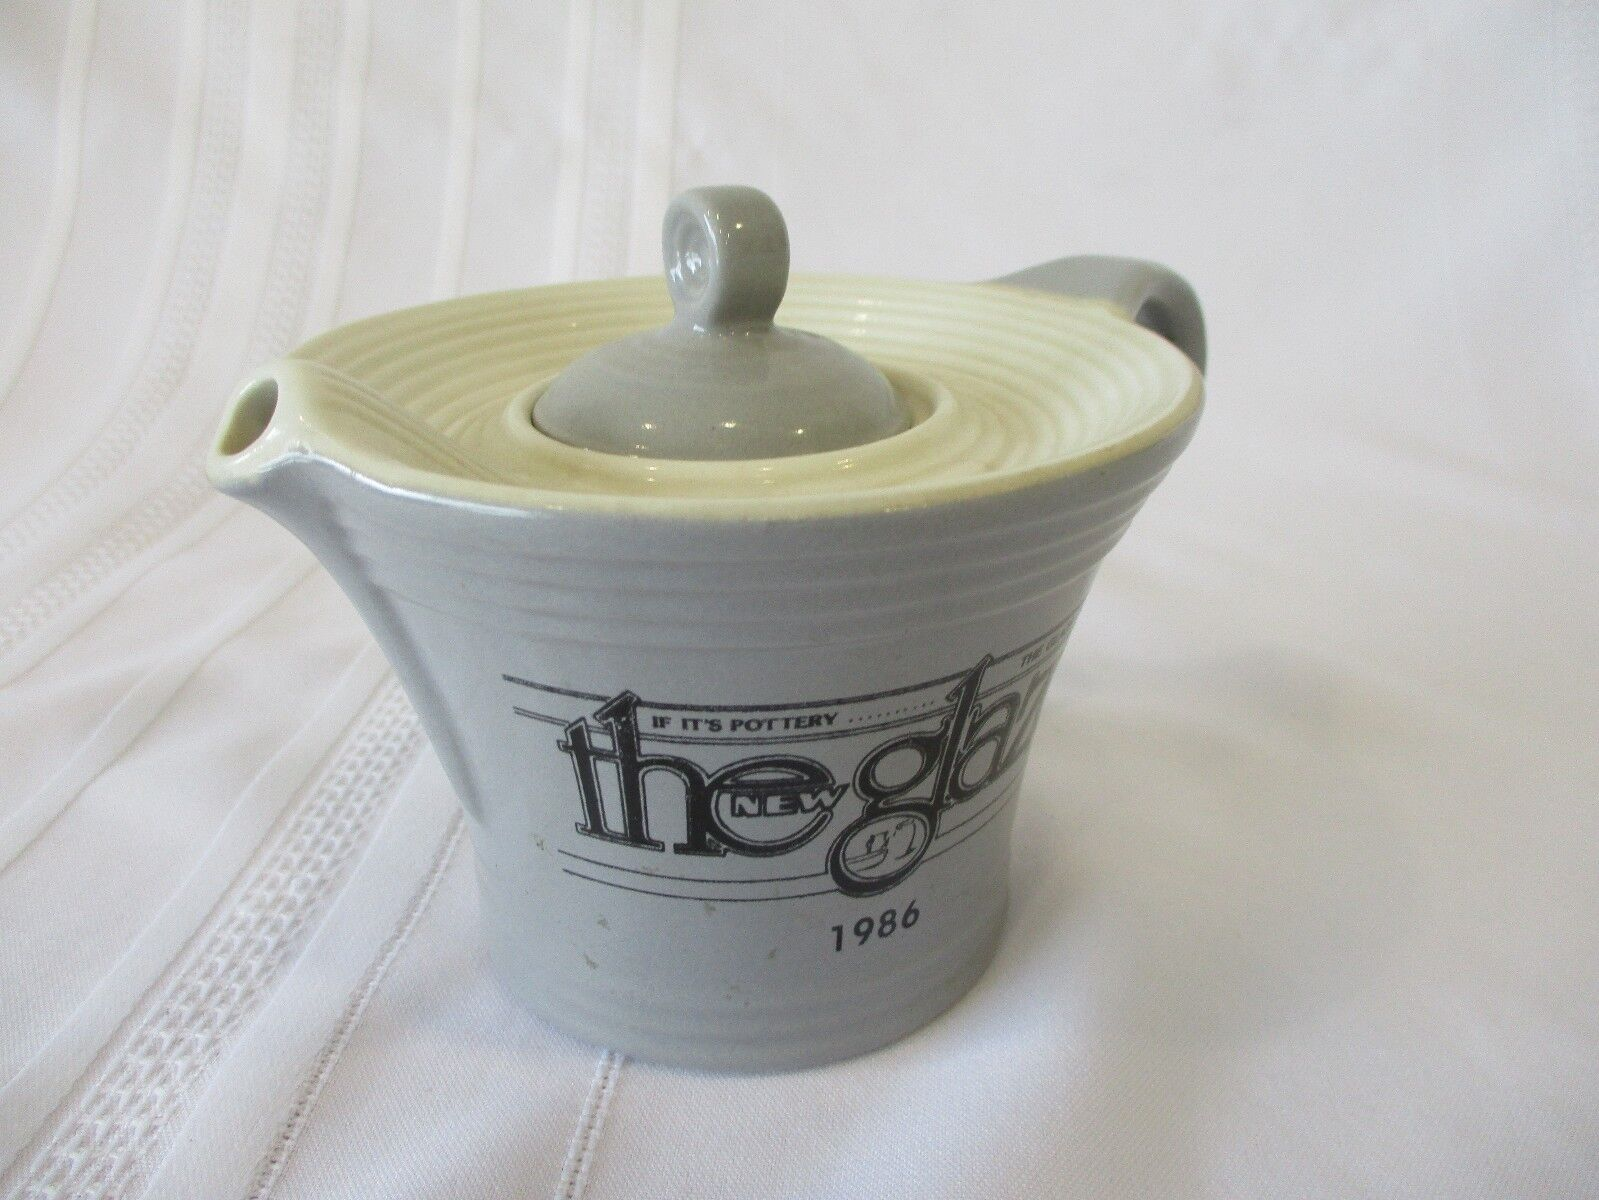 VINTAGE HALL CHINA BABY MELODY 2 CUP TEAPOT GRAY/WHITE THE GLAZE 1986